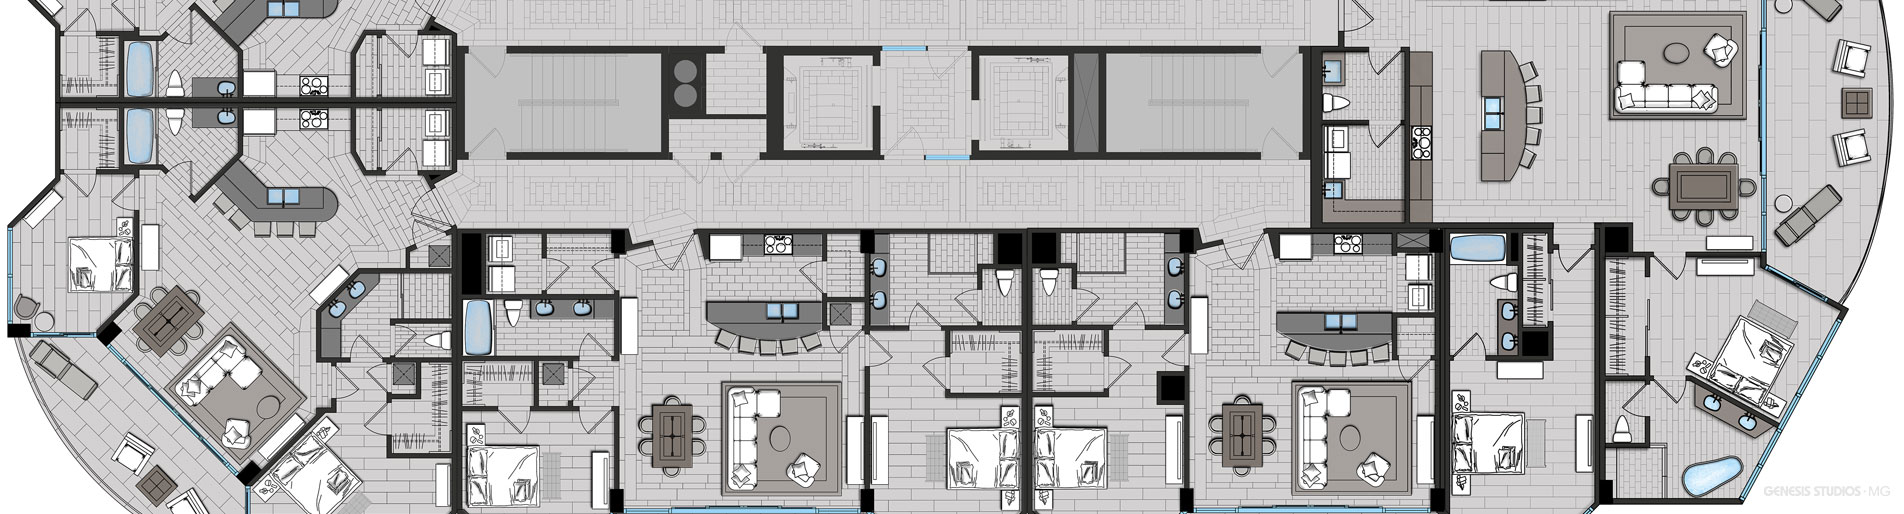 2D Architectural Floor Plan for WJ Weeks Architecture